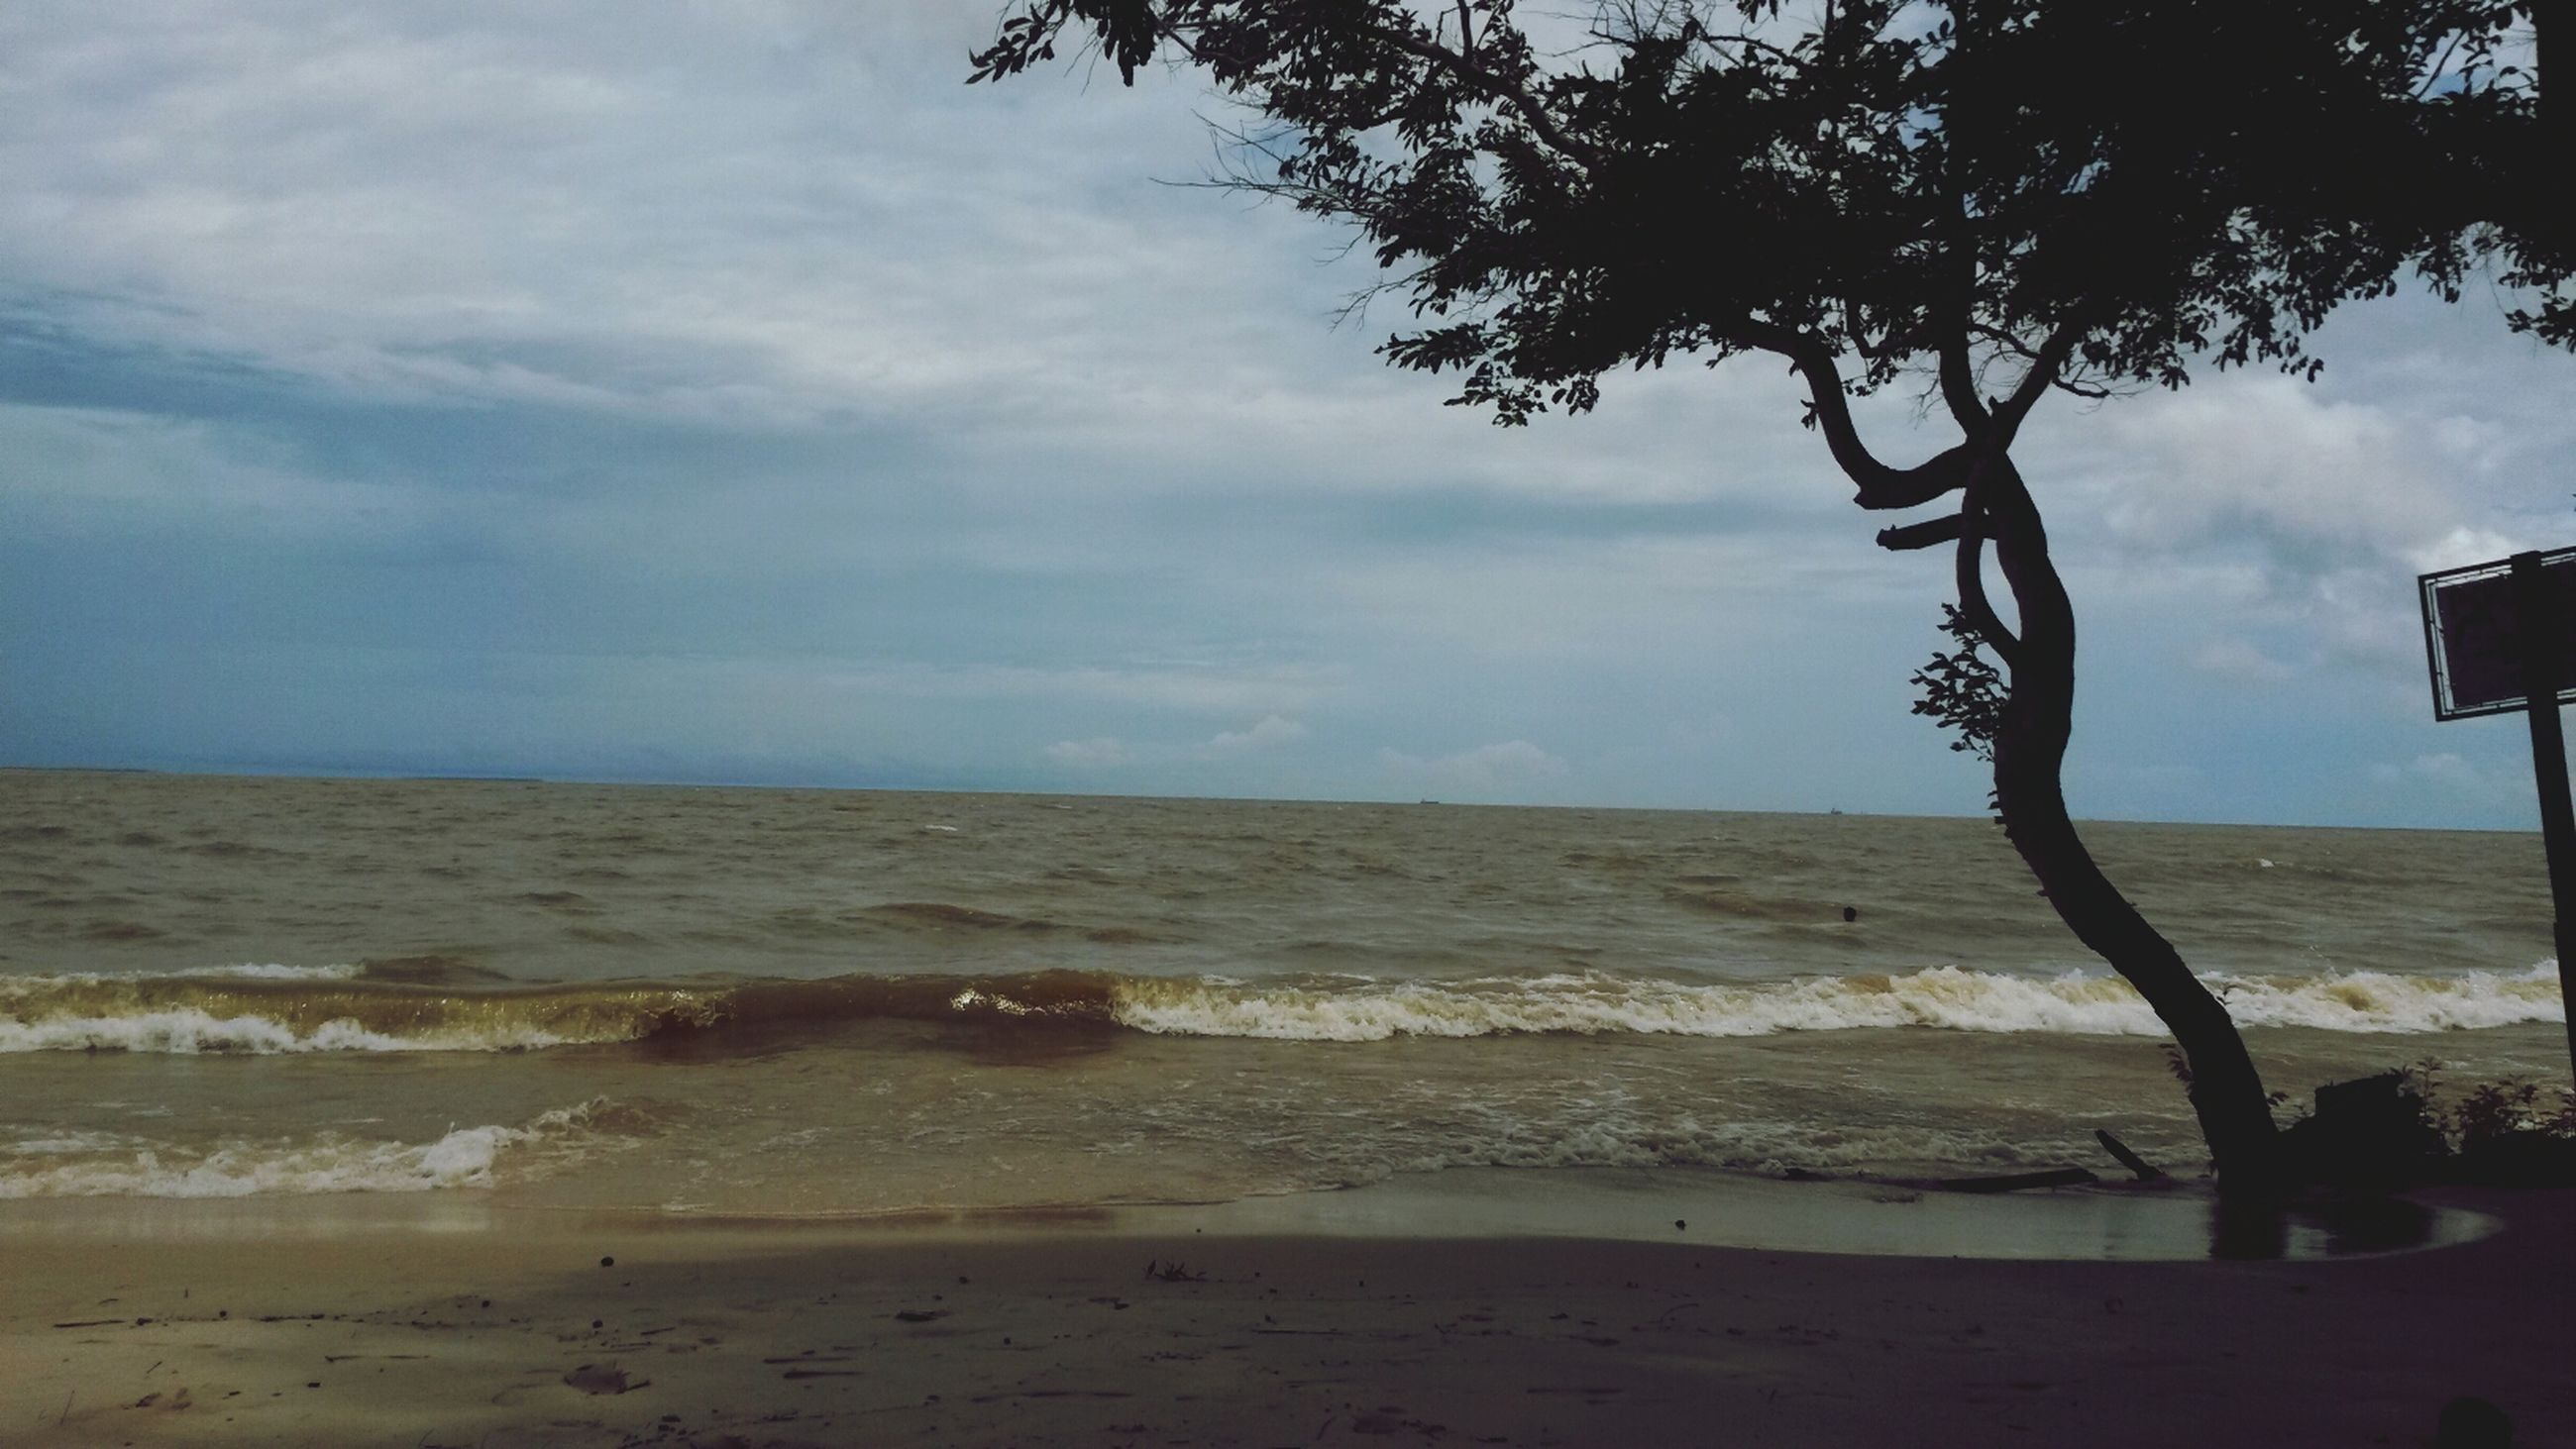 sea, sky, beach, horizon over water, water, shore, cloud - sky, tranquility, scenics, tranquil scene, beauty in nature, sand, nature, cloud, tree, cloudy, idyllic, coastline, day, outdoors